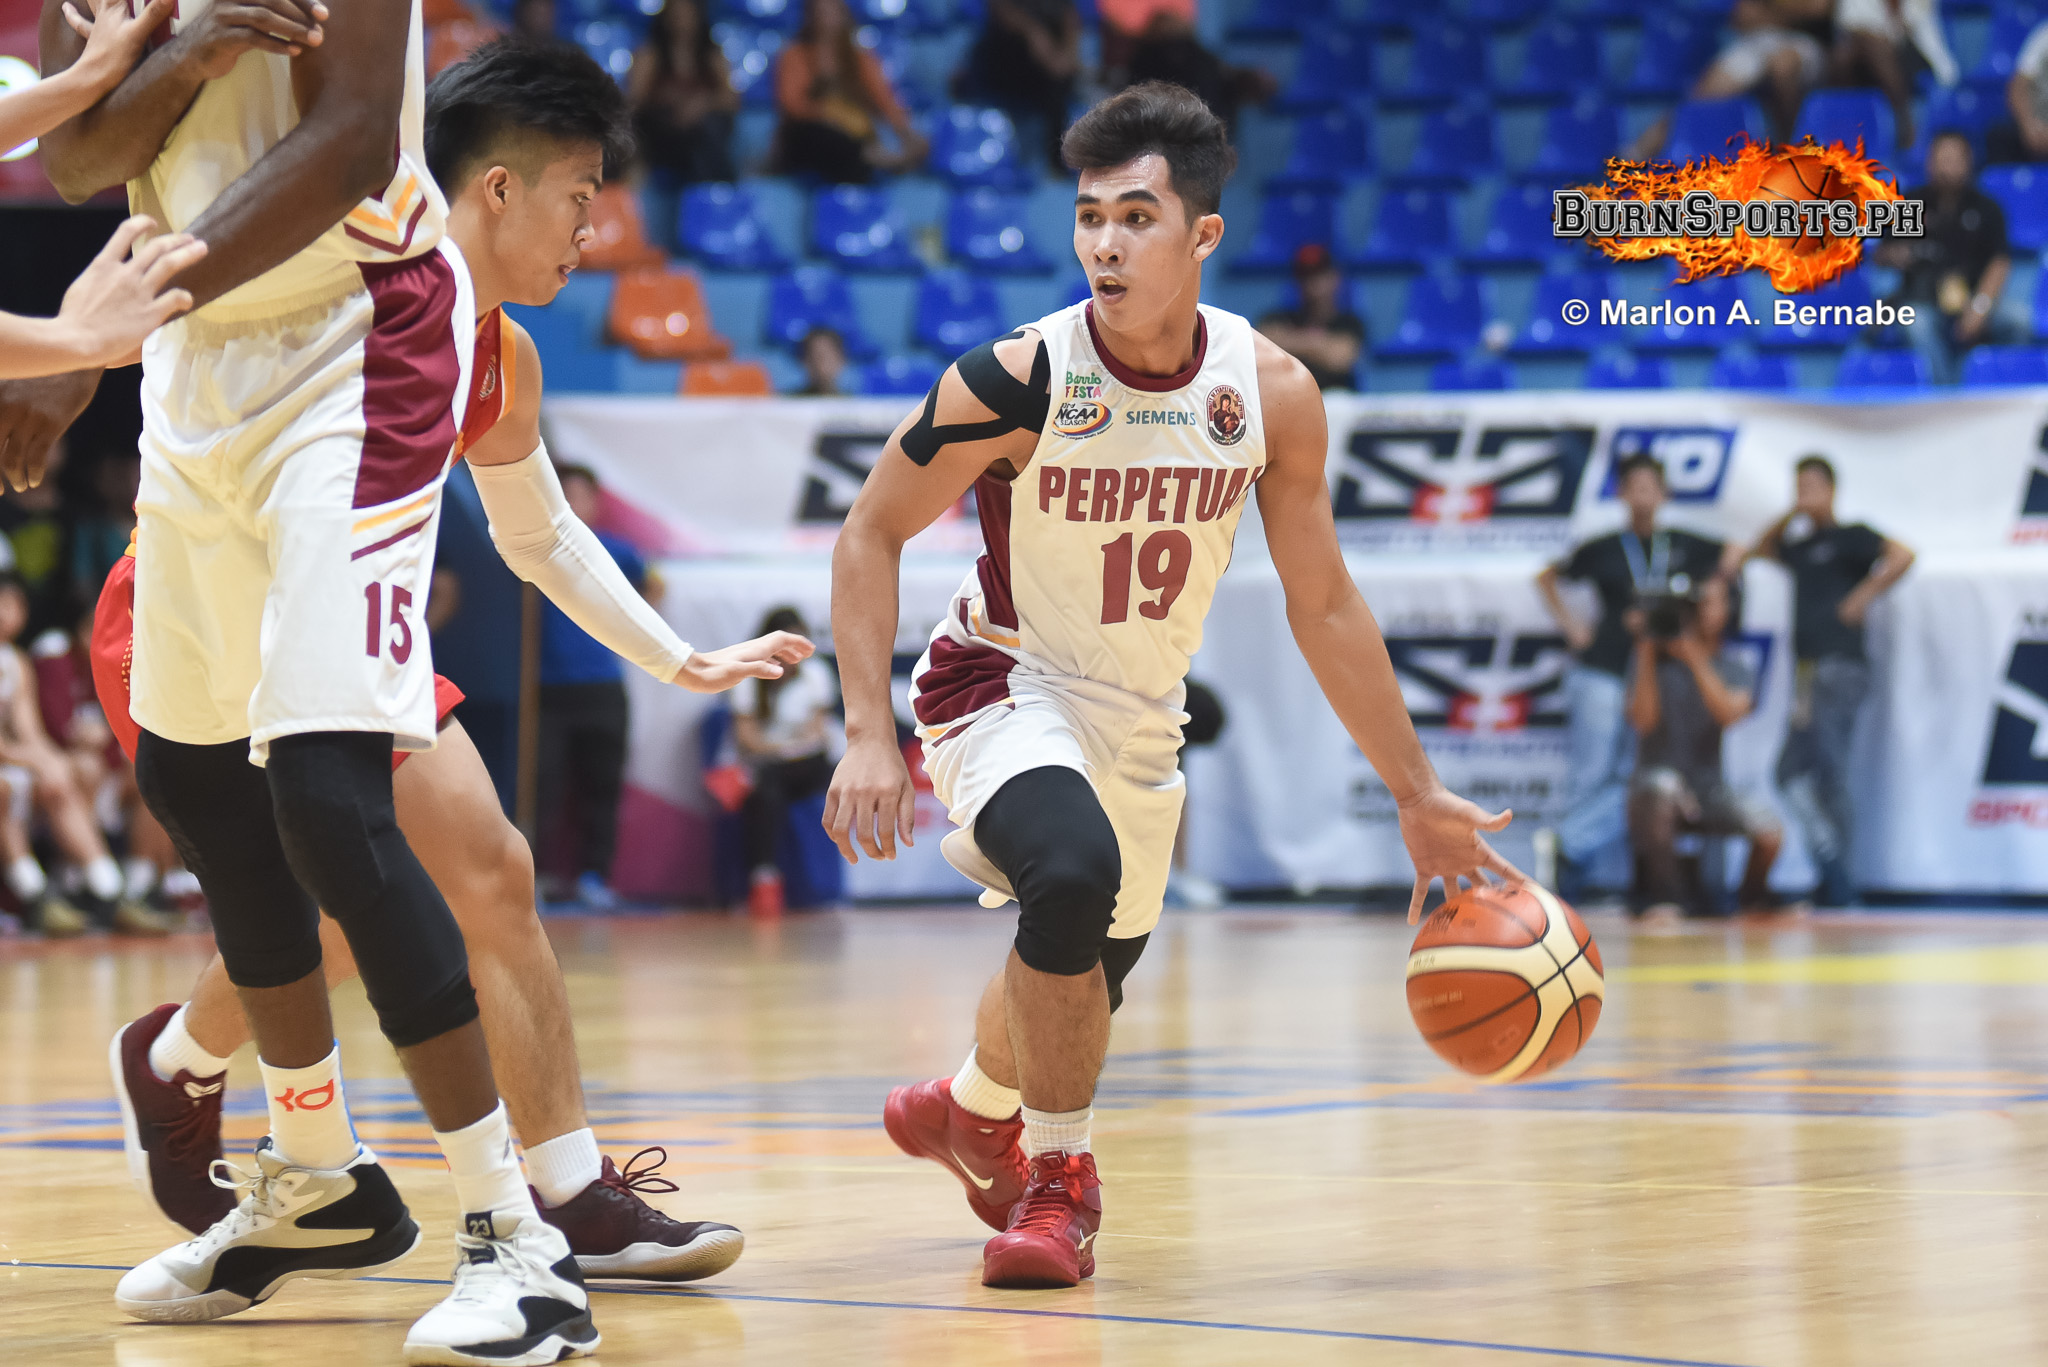 Perpetual survives gritty Arellano, scores bounce back win